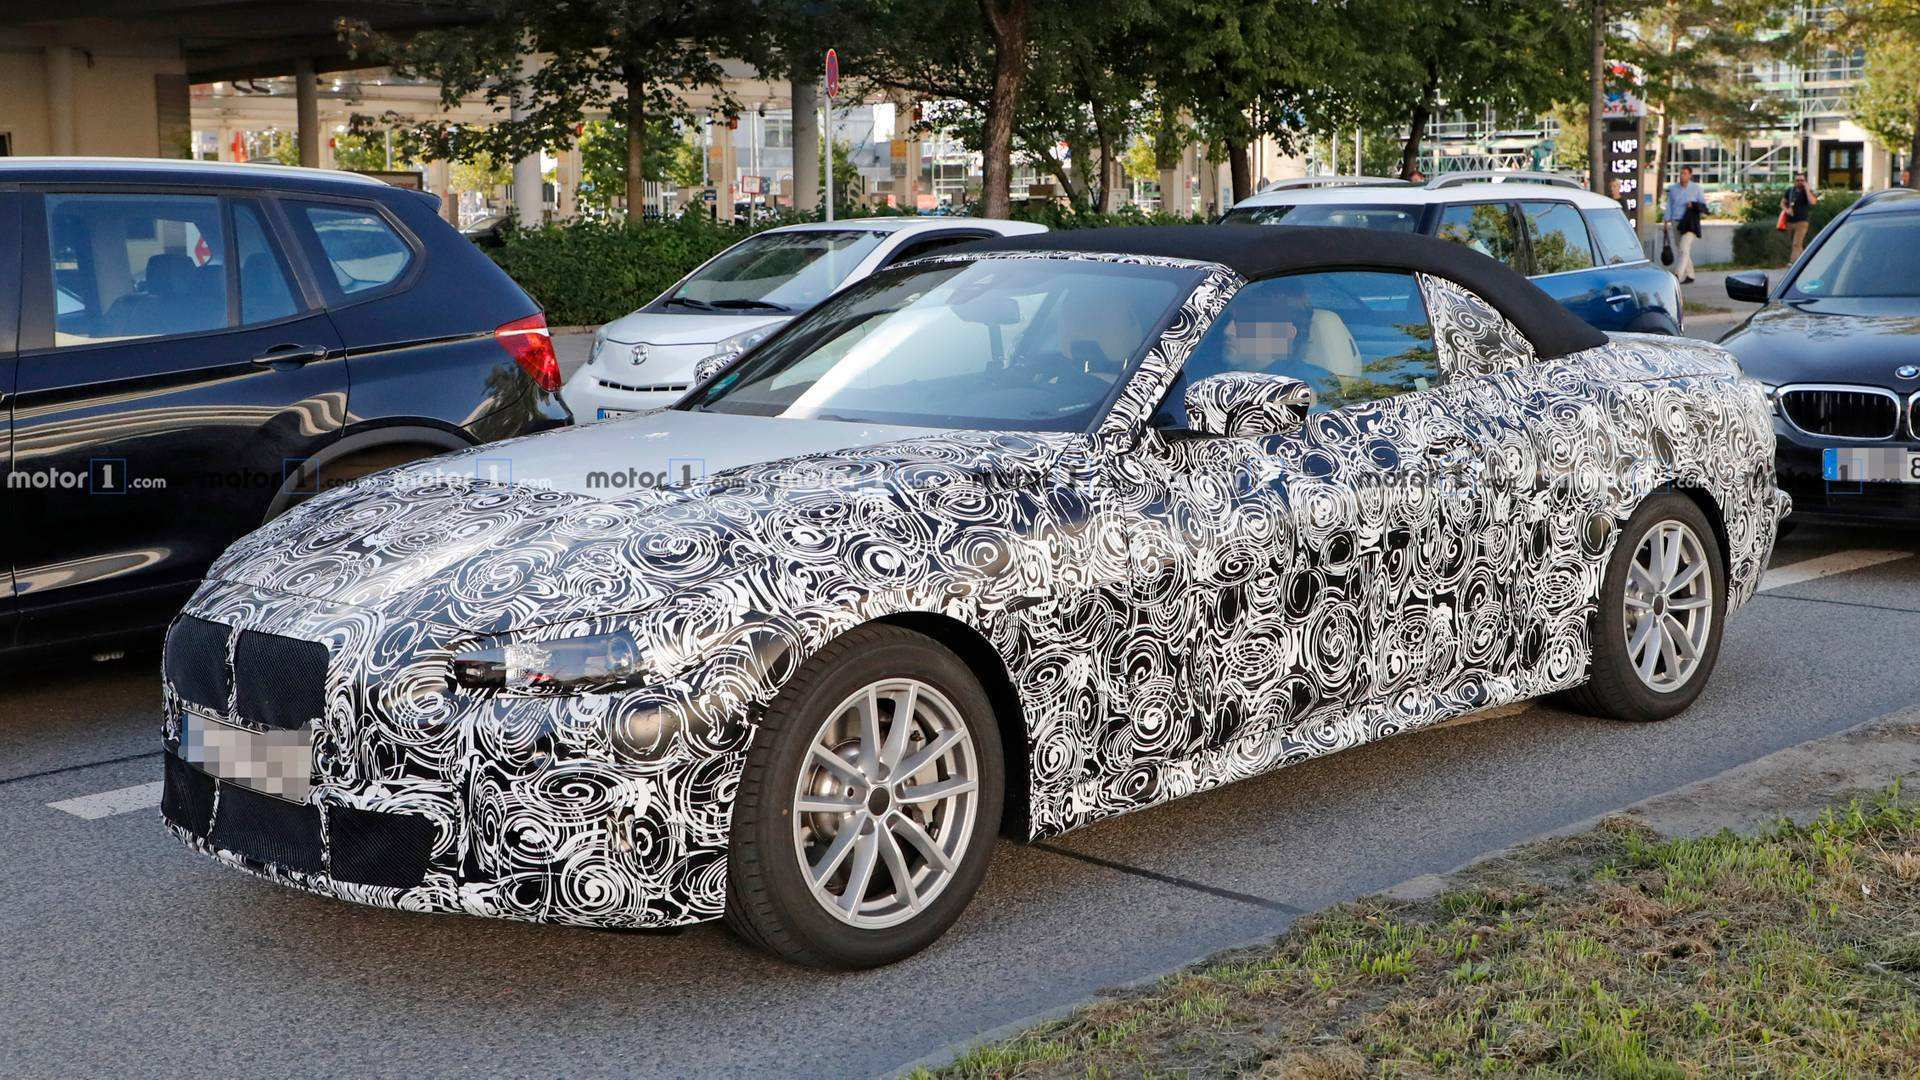 26 New 2020 Bmw 4 Series Release Date Style